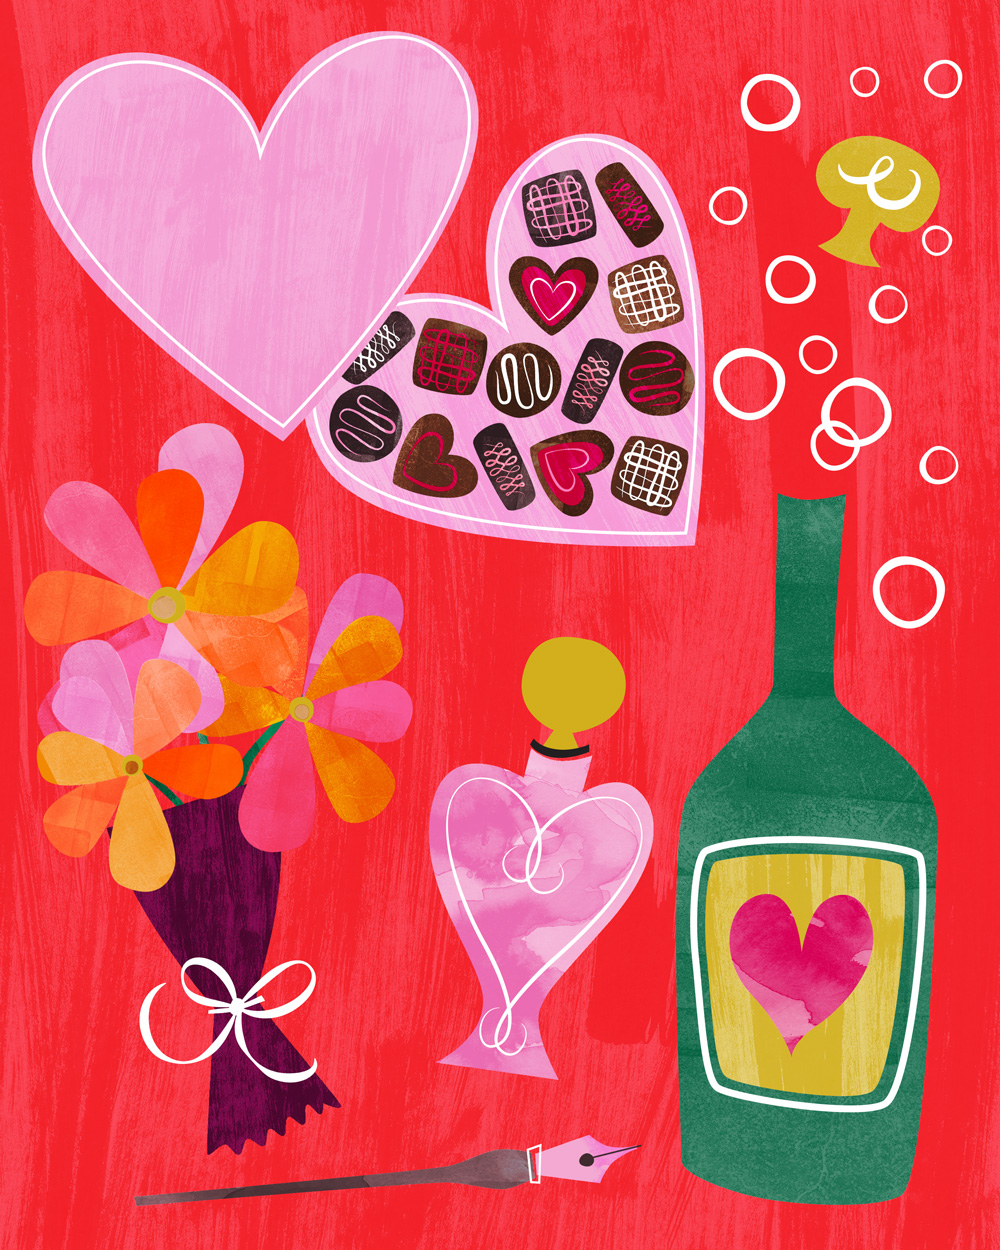 Valentine's Day Illustration by Bryna Shields